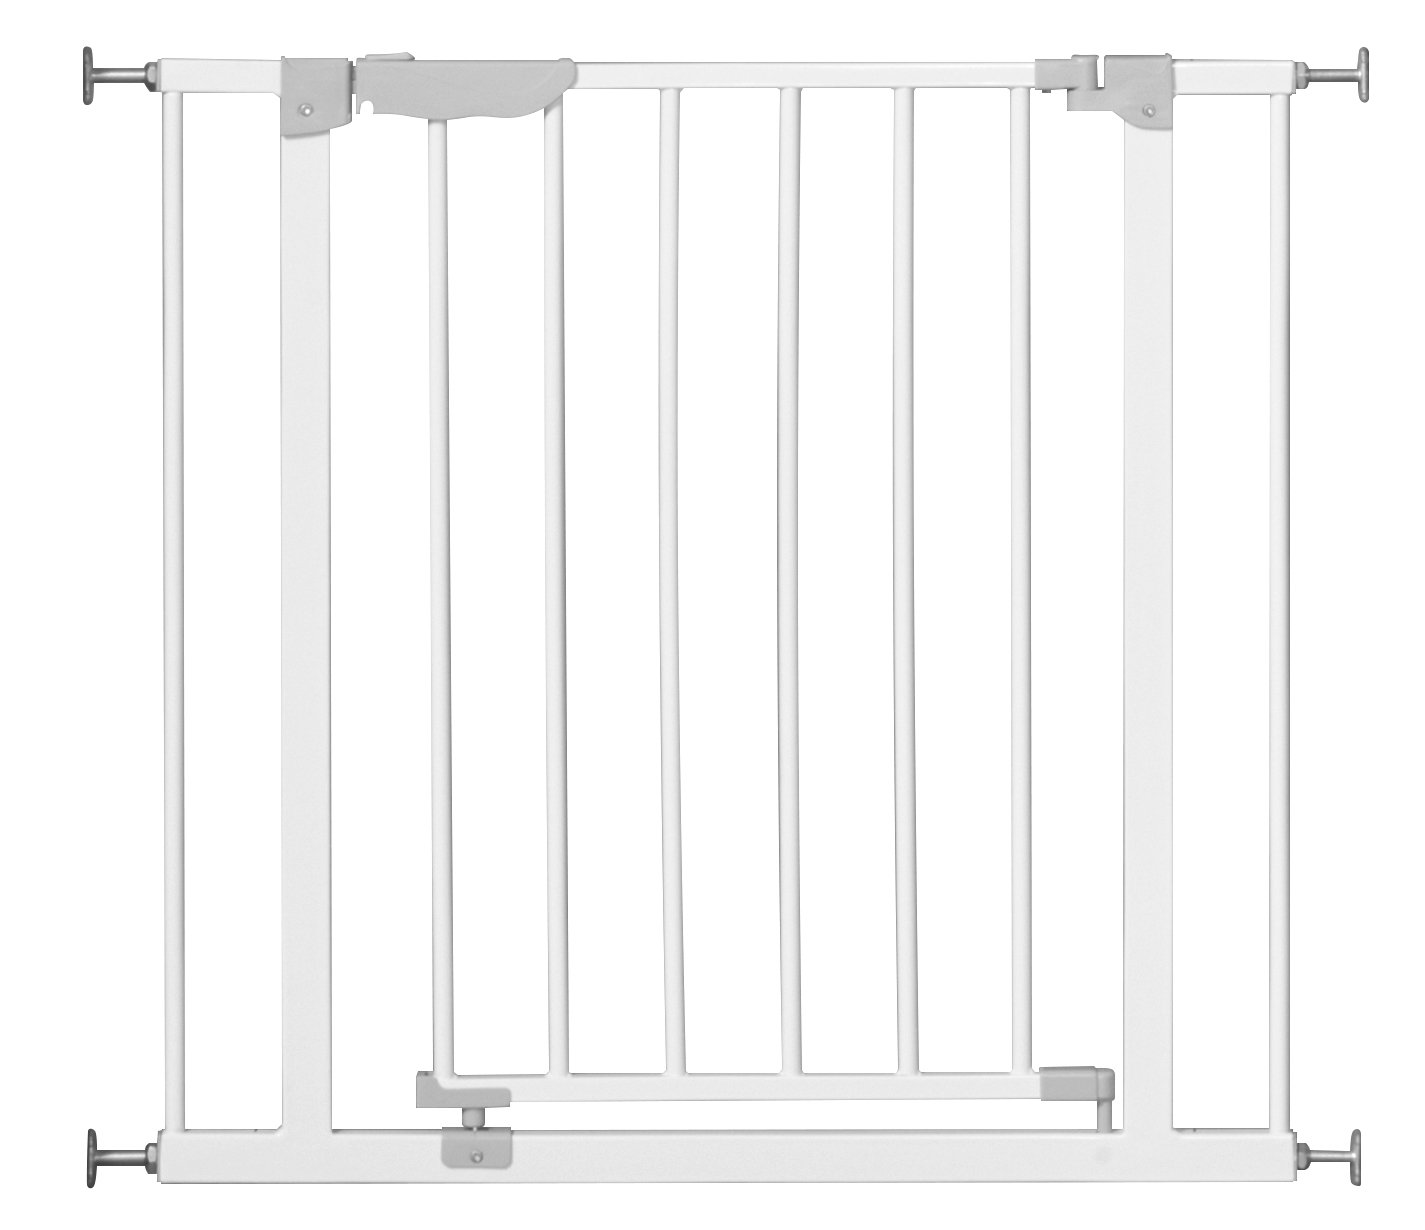 Advanta Slam Shut Pressure Gate, White